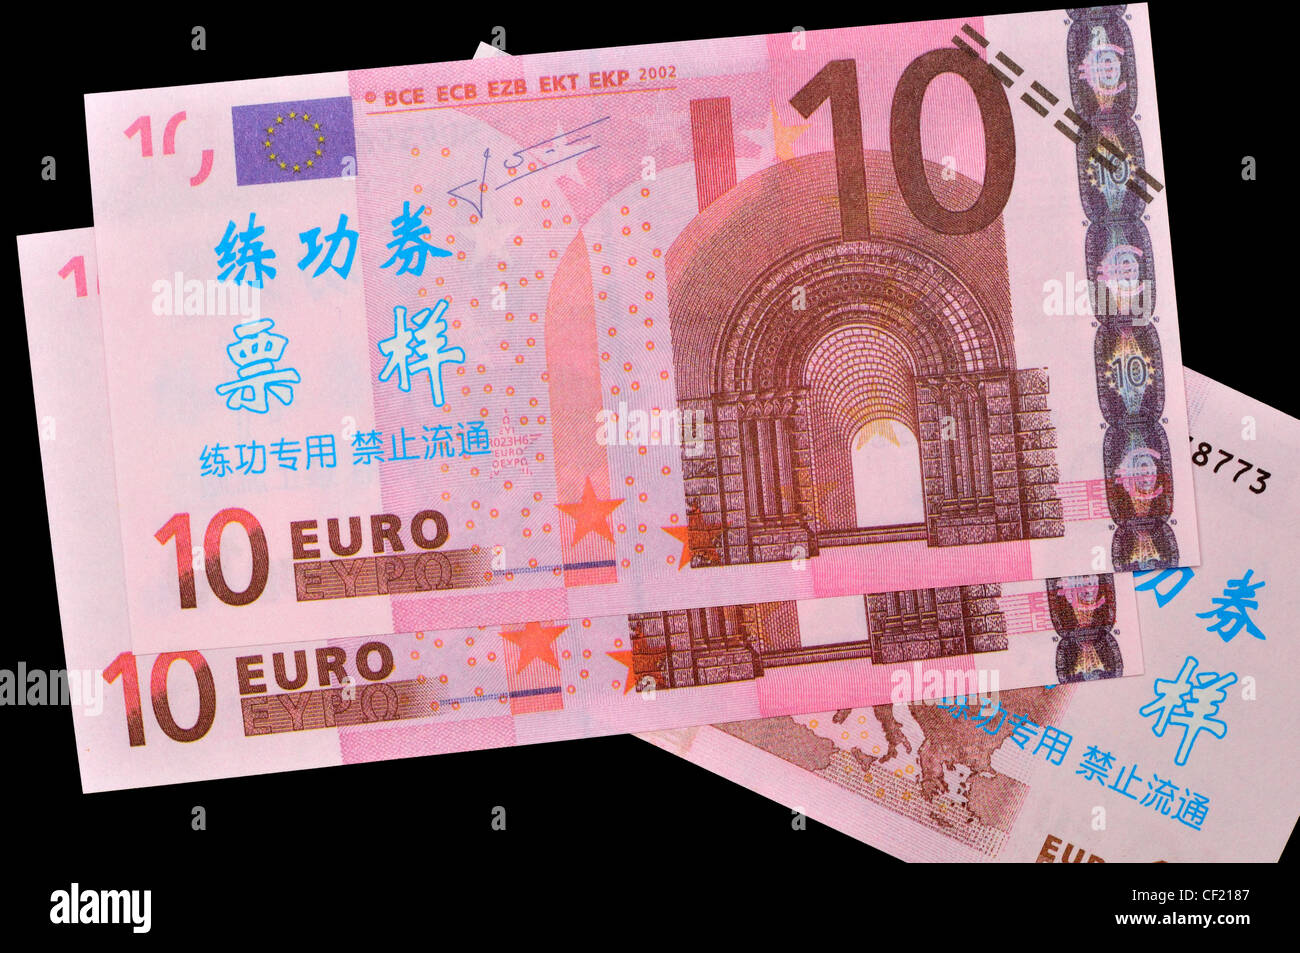 Test banknotes used for training in Chinese Banks. 10 Euros - Stock Image